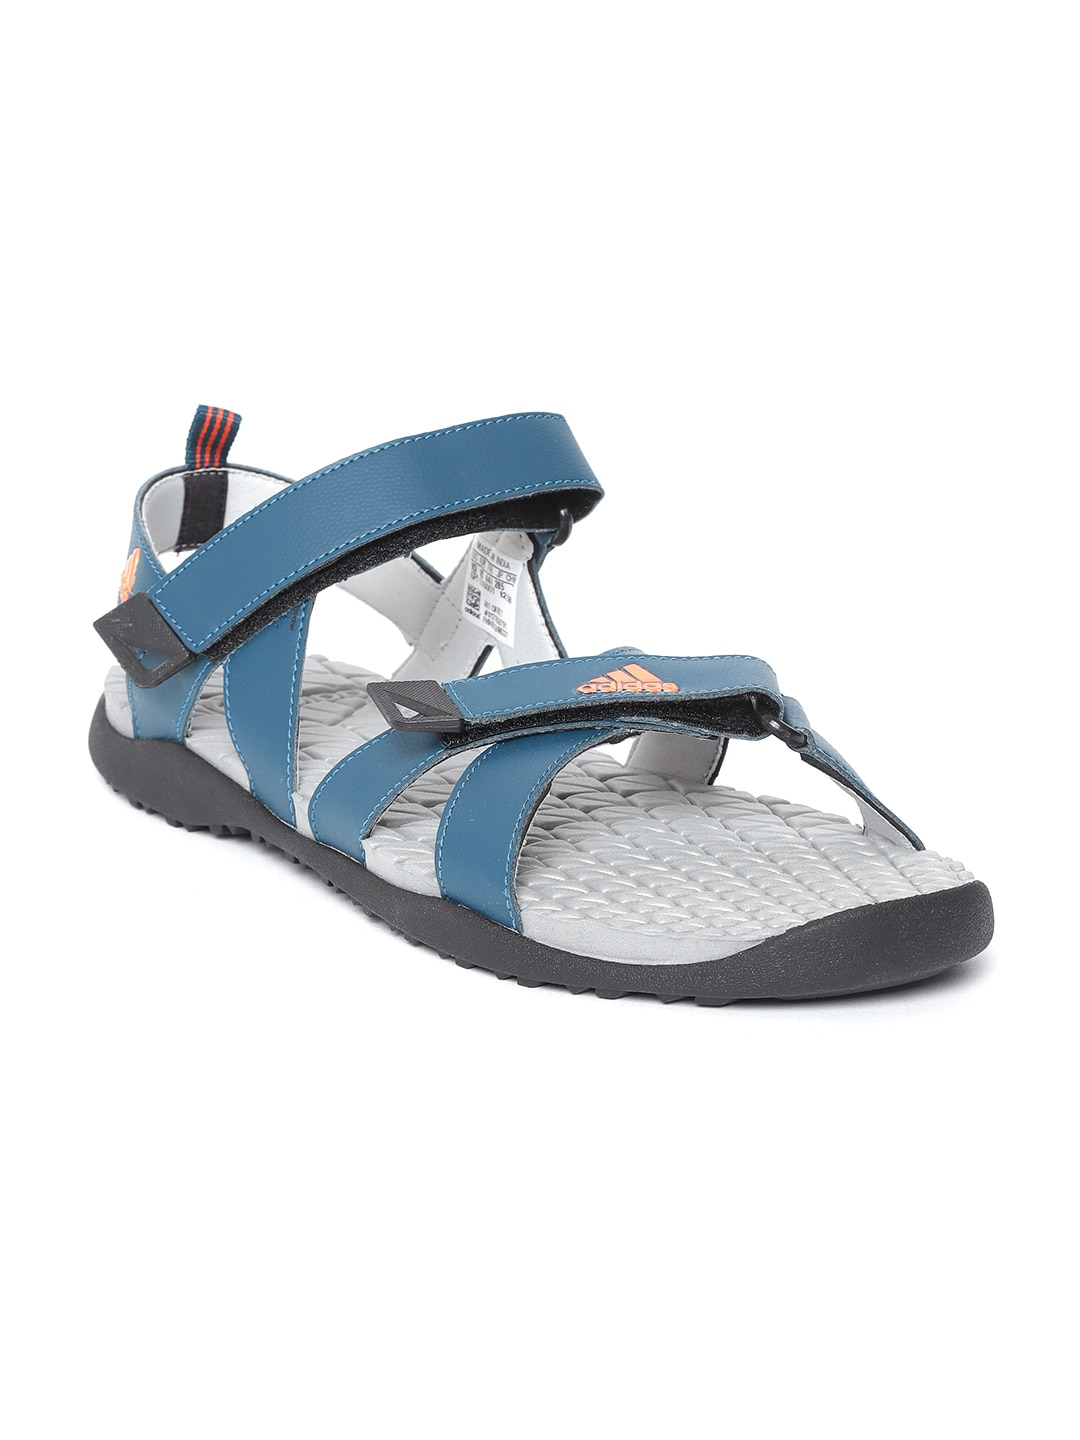 21c5d6470 Adidas Floaters - Buy Adidas Sports Sandals Online in India